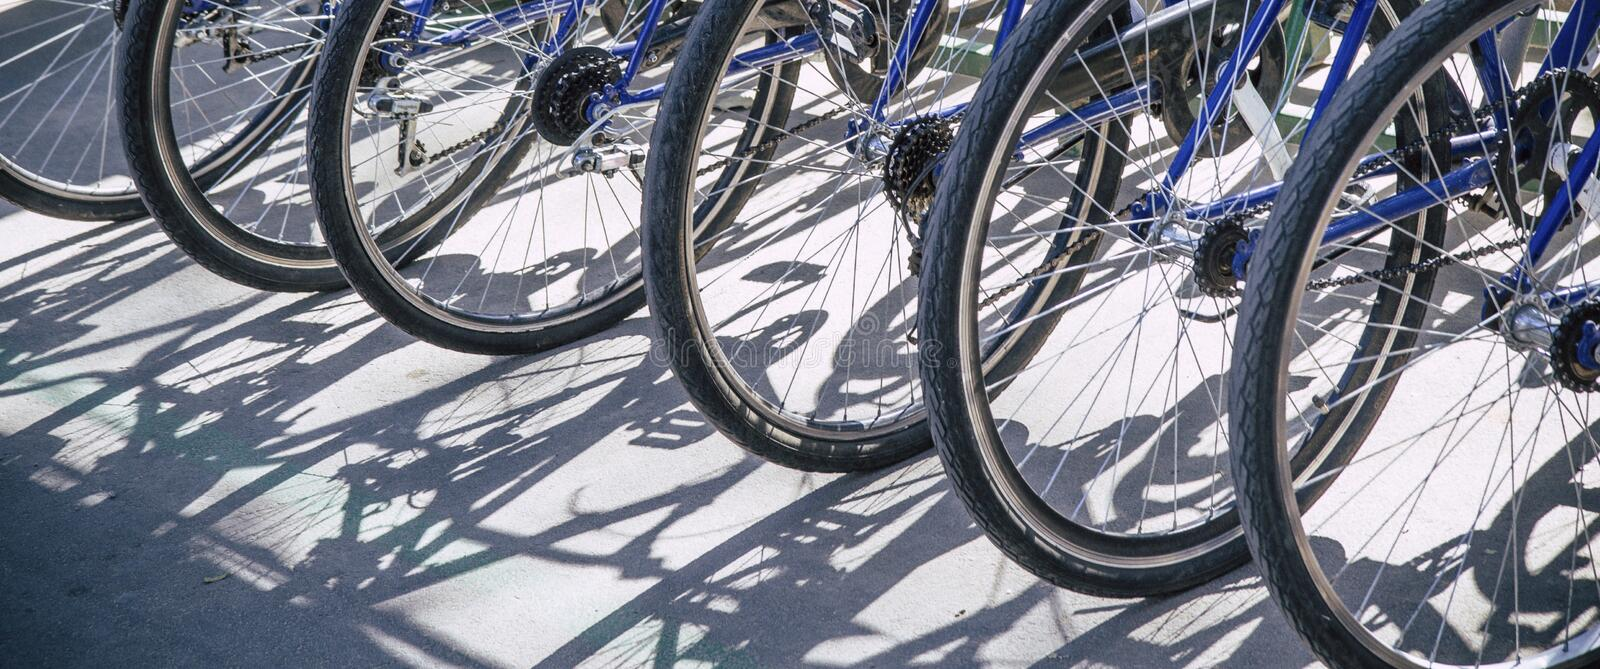 Bicycle rent Public bicycles, sharing  bikes saddle. Detail view of a bike wheel with more bicycles lined up. Bicycle rent. Closeu stock images